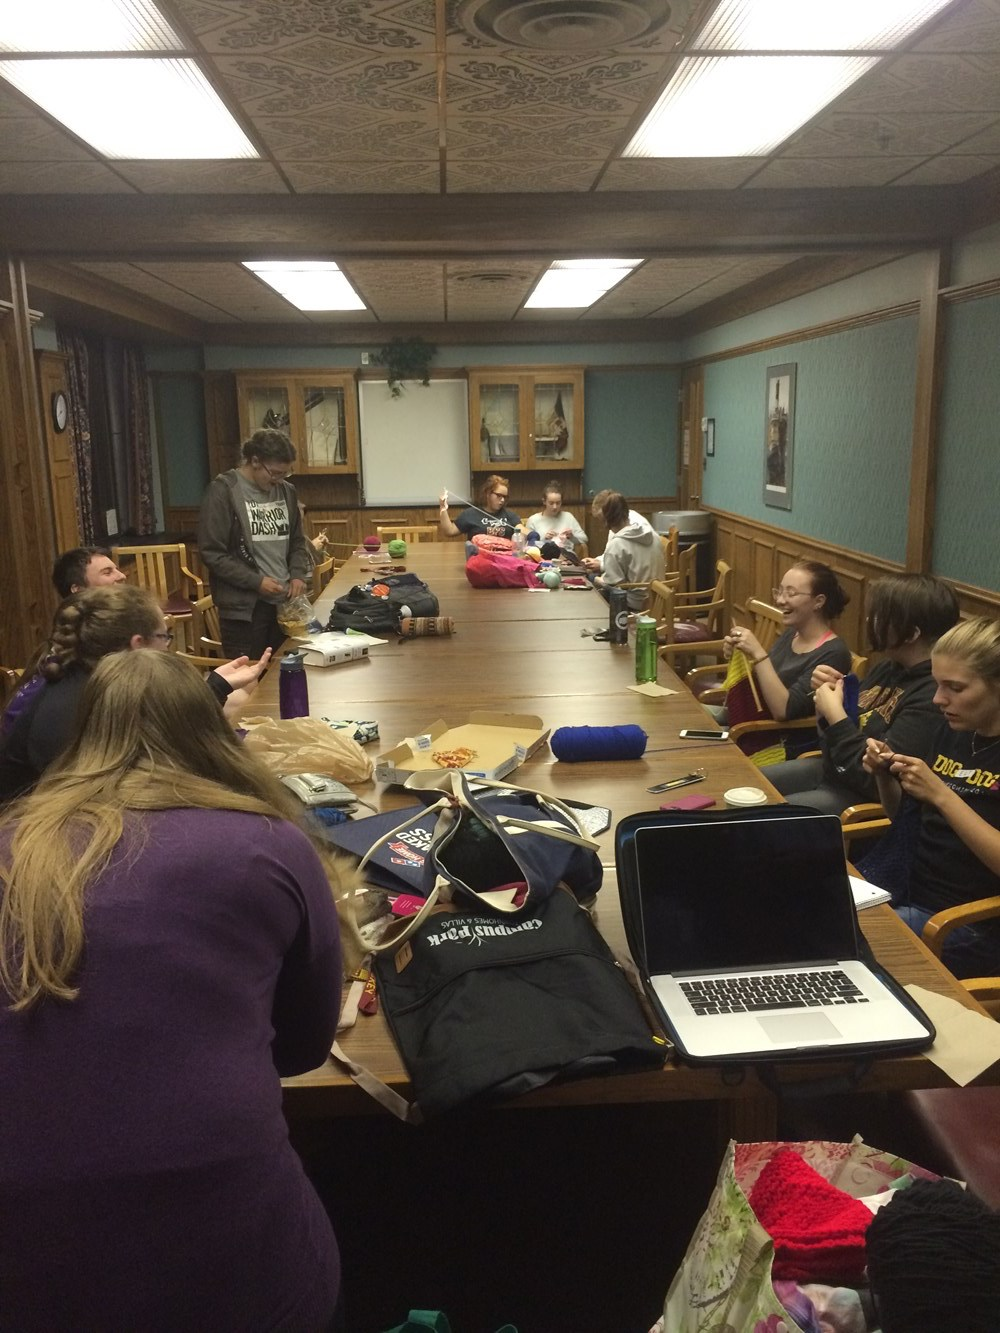 The Knit Wits at a typical meeting. Photo Courtesy of Emily Ferrier